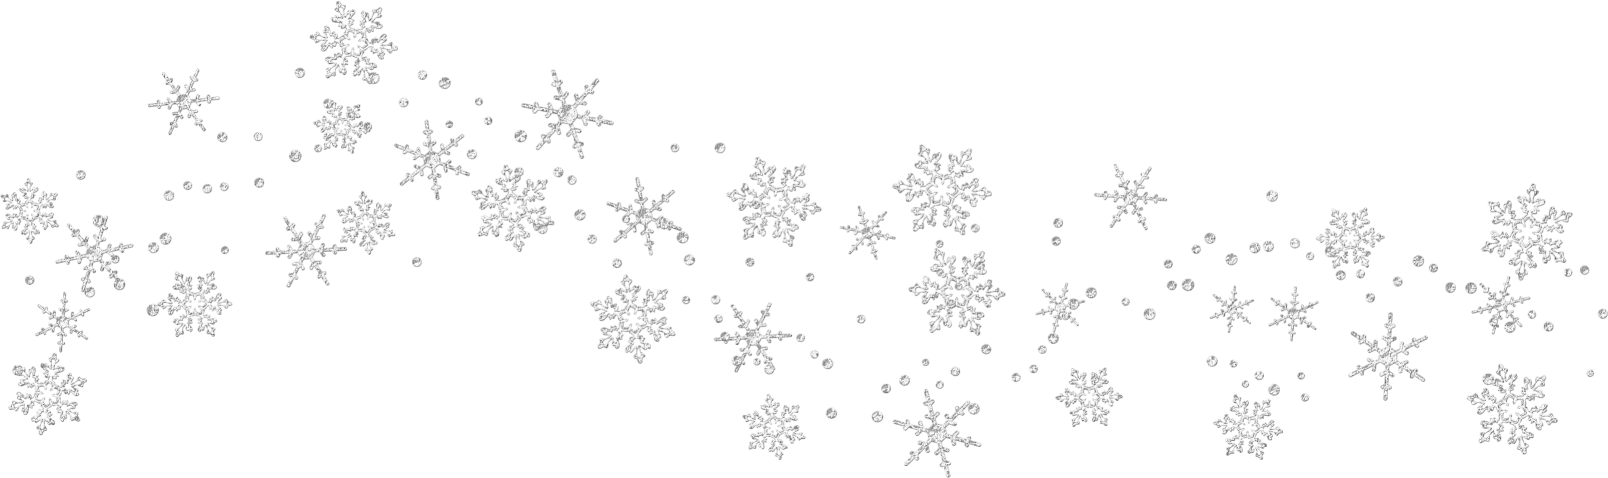 Free snowflake clipart transparent background clip library library 28+ Collection of Free Snowflake Clipart Transparent Background ... clip library library